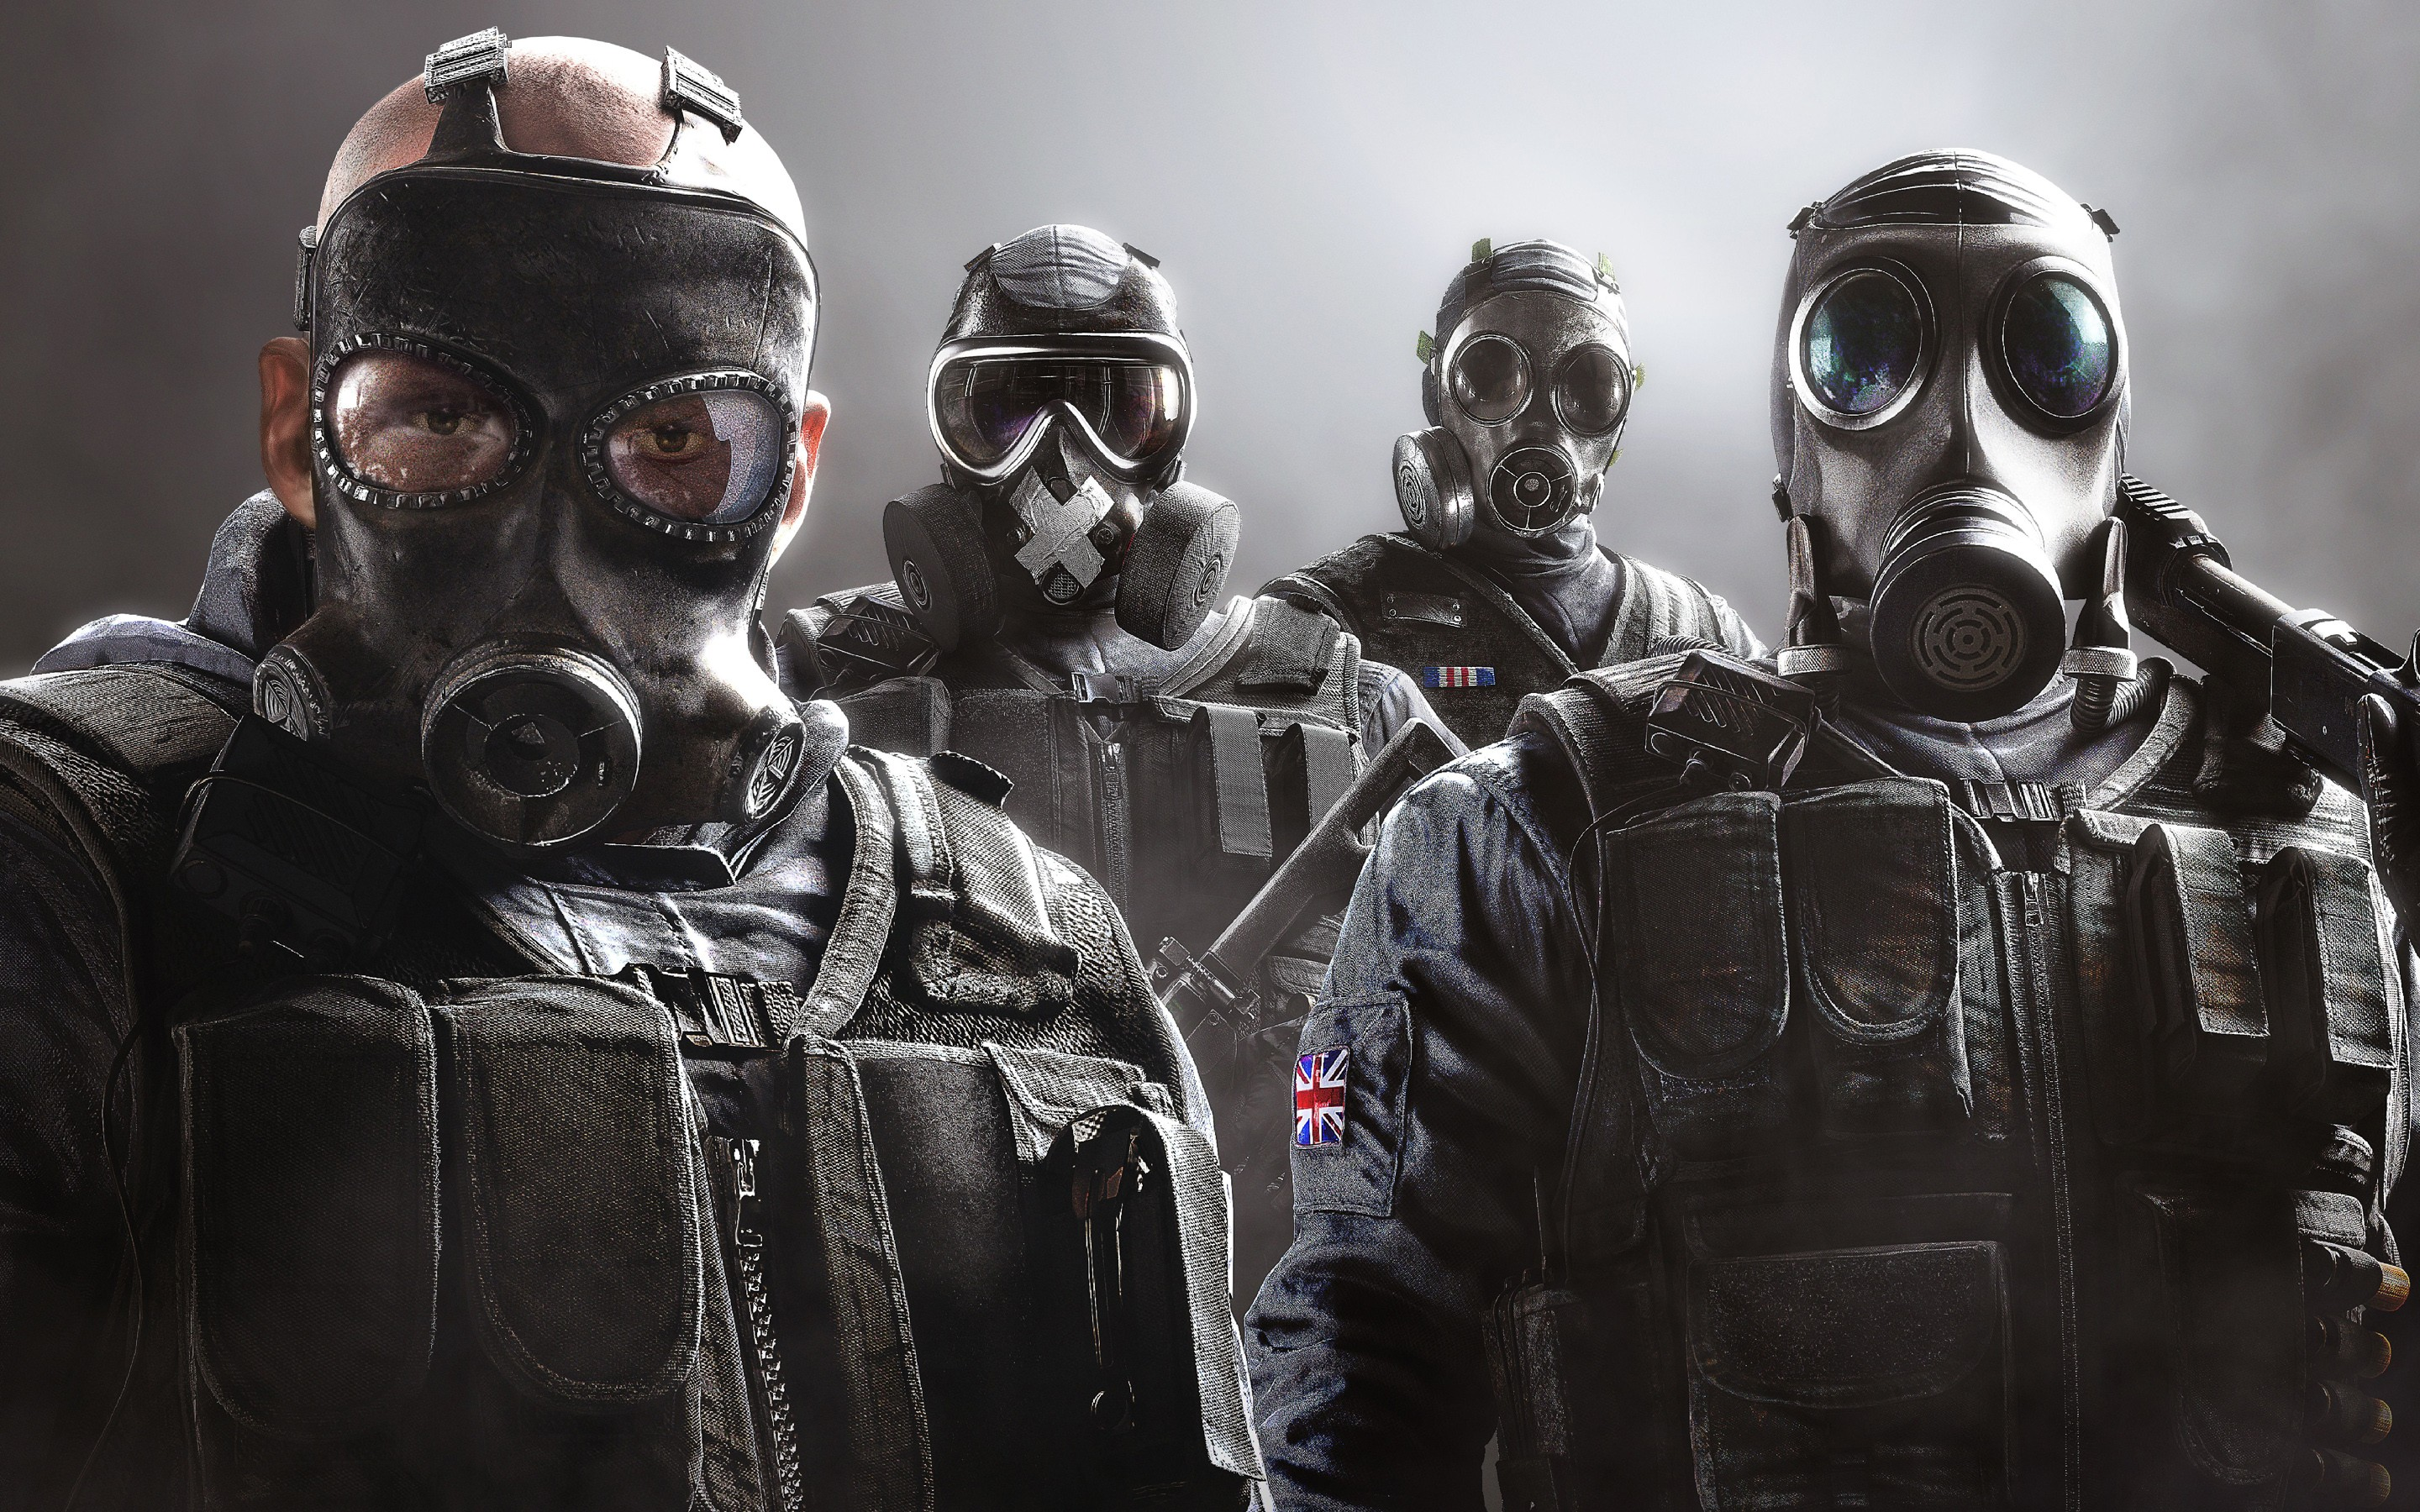 Rainbow Six Siege Wallpaper Hd: 2048x1152 Tom Clancys Rainbow Six Siege 2048x1152